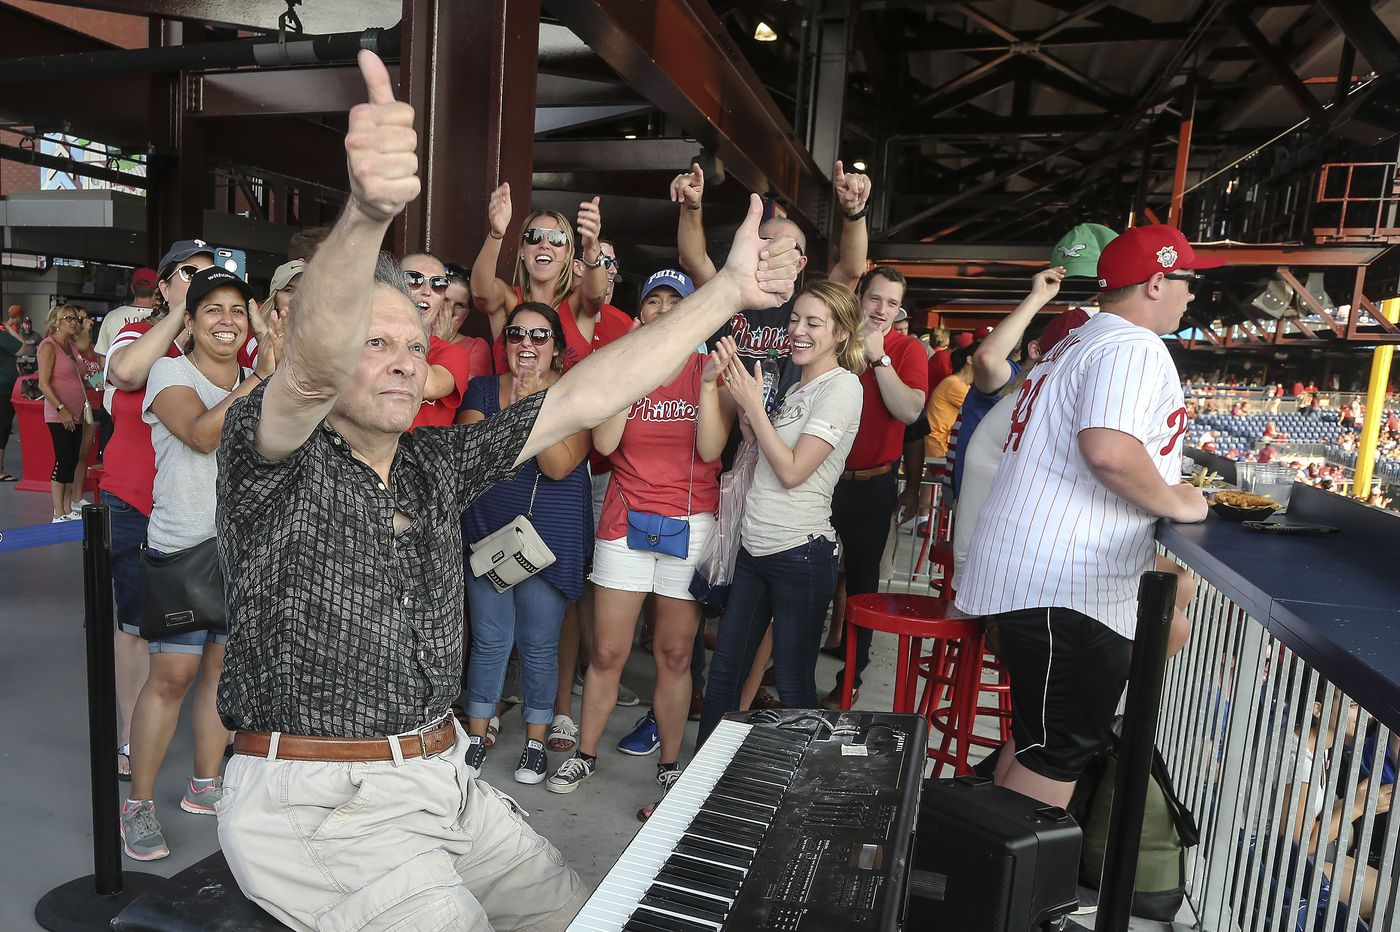 Church organist by day, Phillies organist by night